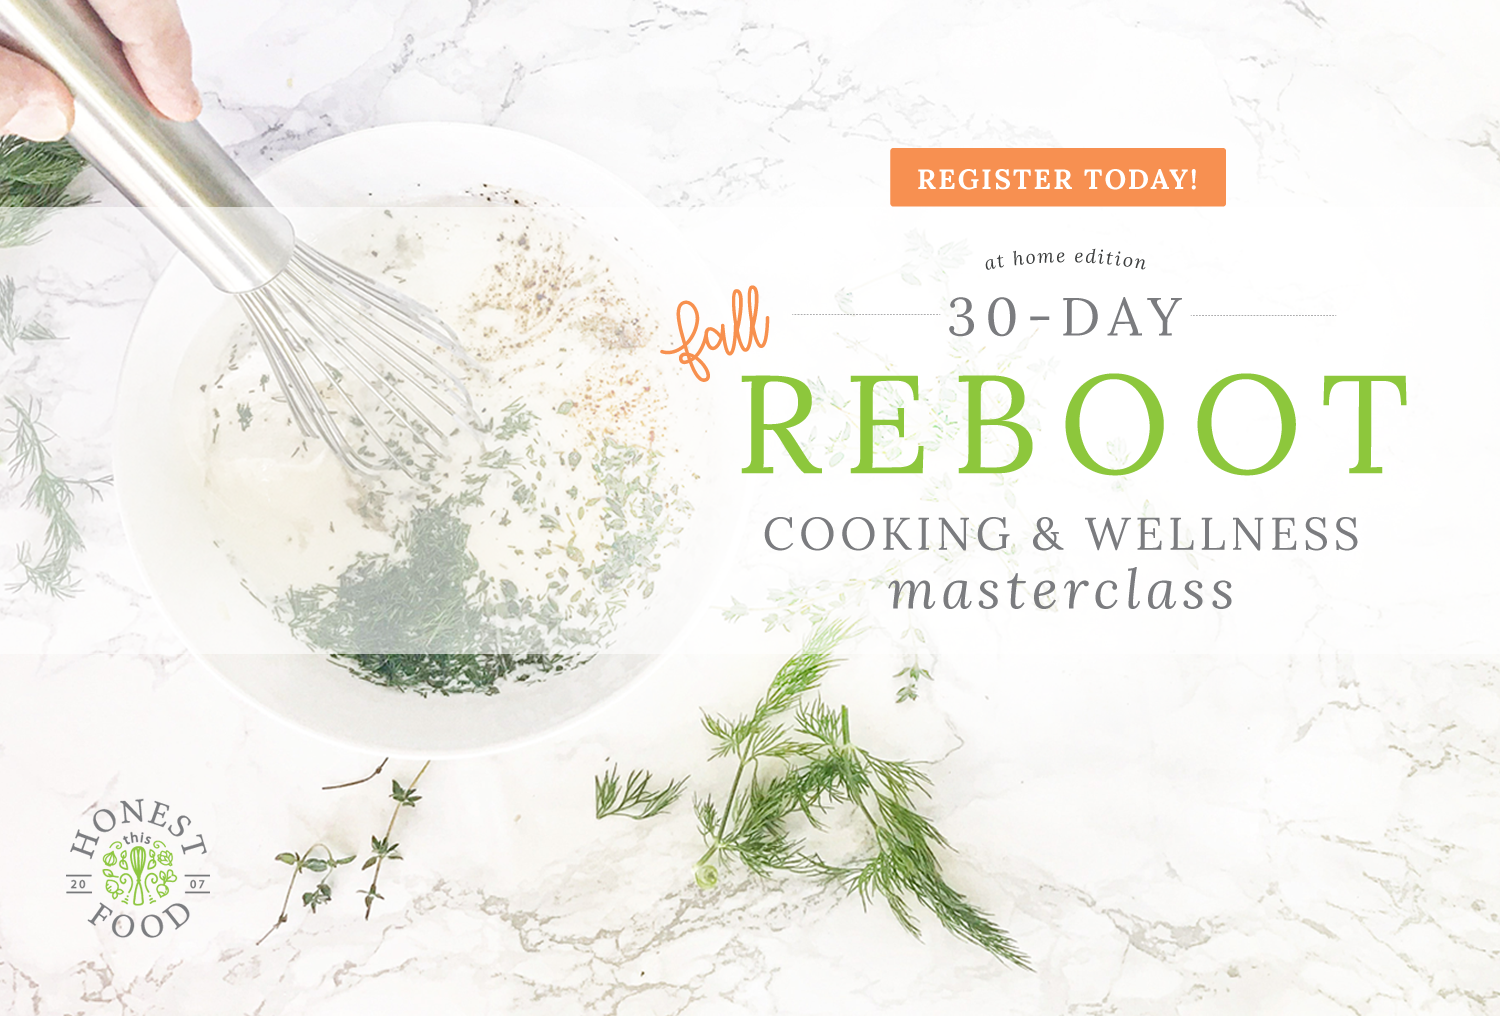 This Honest Food | 30-Day Reboot Cooking & Wellness Masterclass